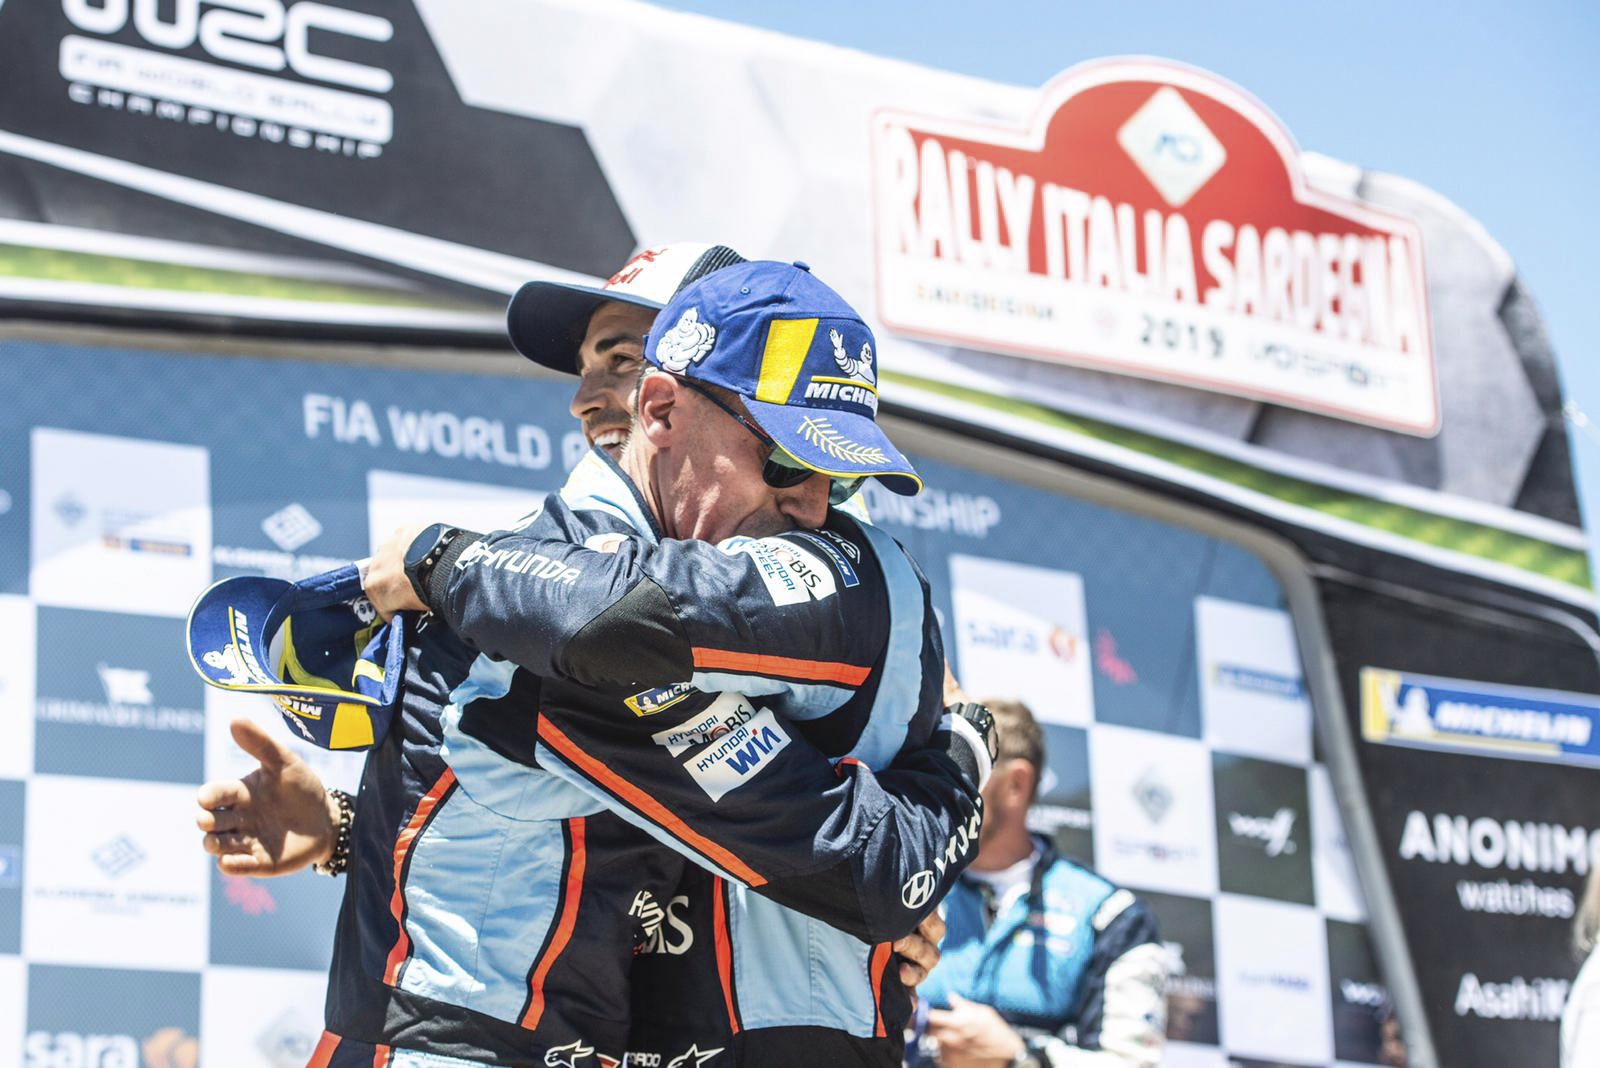 DaniSordo_RallyItaliaSardegna2019_Final_11